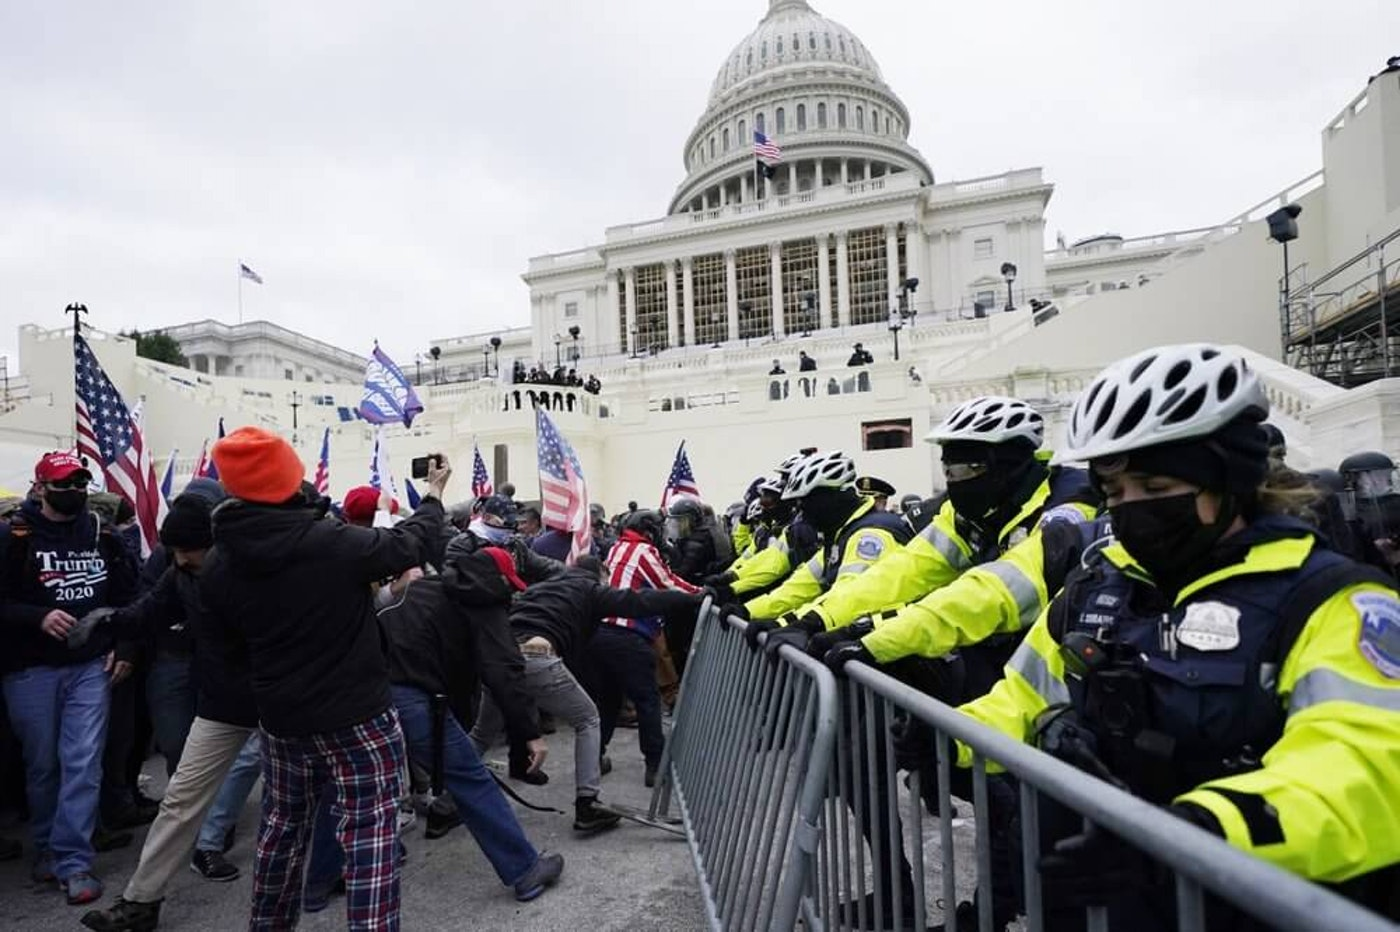 rump supporters try to break through a police barrier, Wednesday, Jan. 6, 2021, at the Capitol in Washington. As Congress prepares to affirm President-elect Joe Biden's victory, thousands of people have gathered to show their support for President Donald Trump and his claims of election fraud. (AP Photo/Julio Cortez)